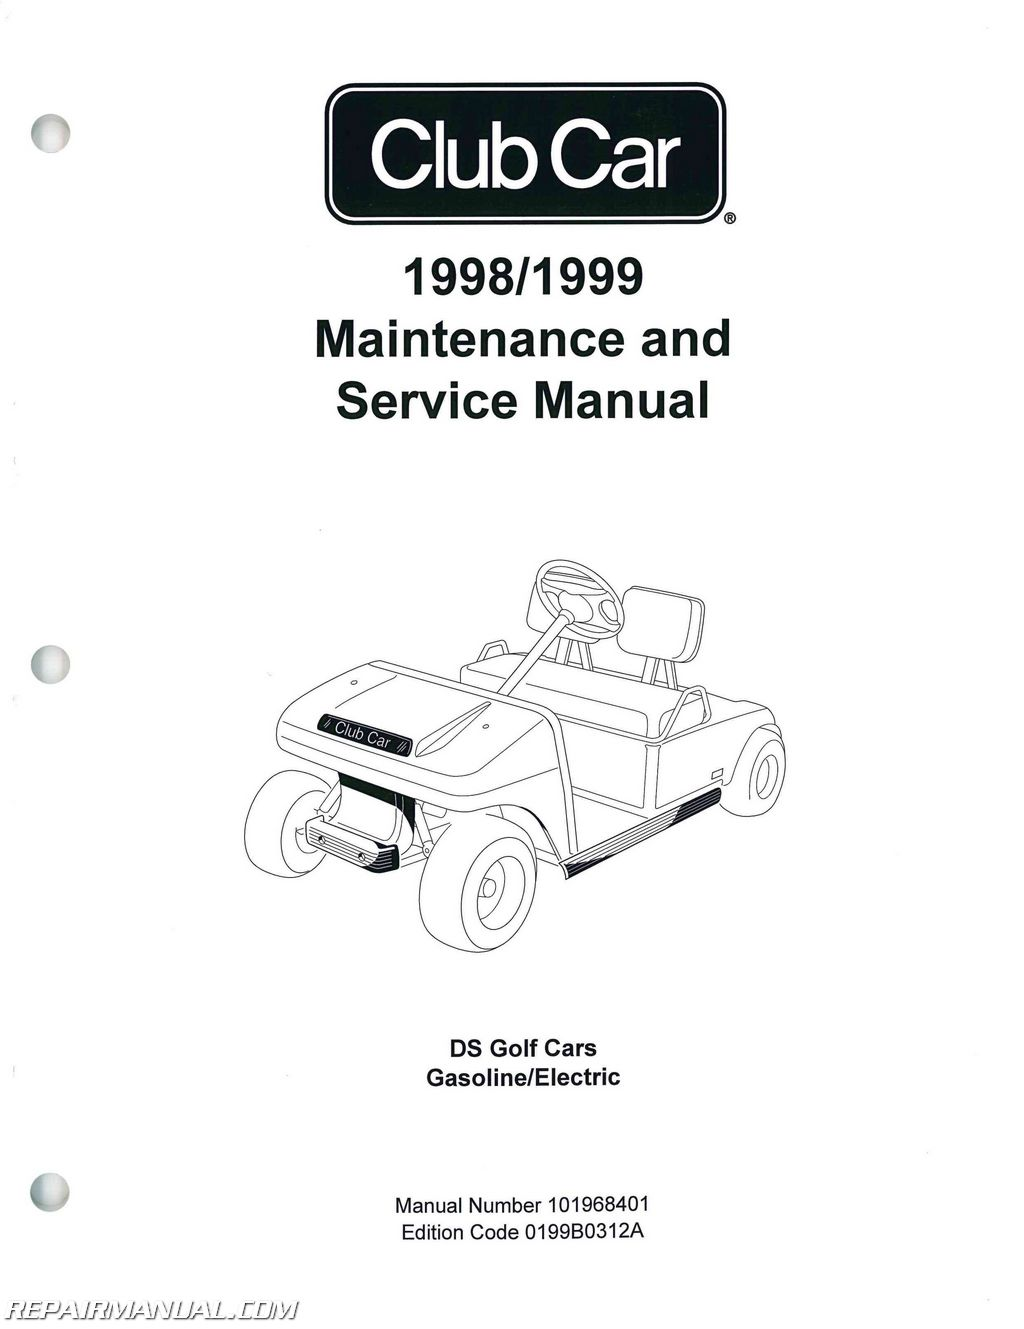 Club Car Ds Golf Car Service Manual